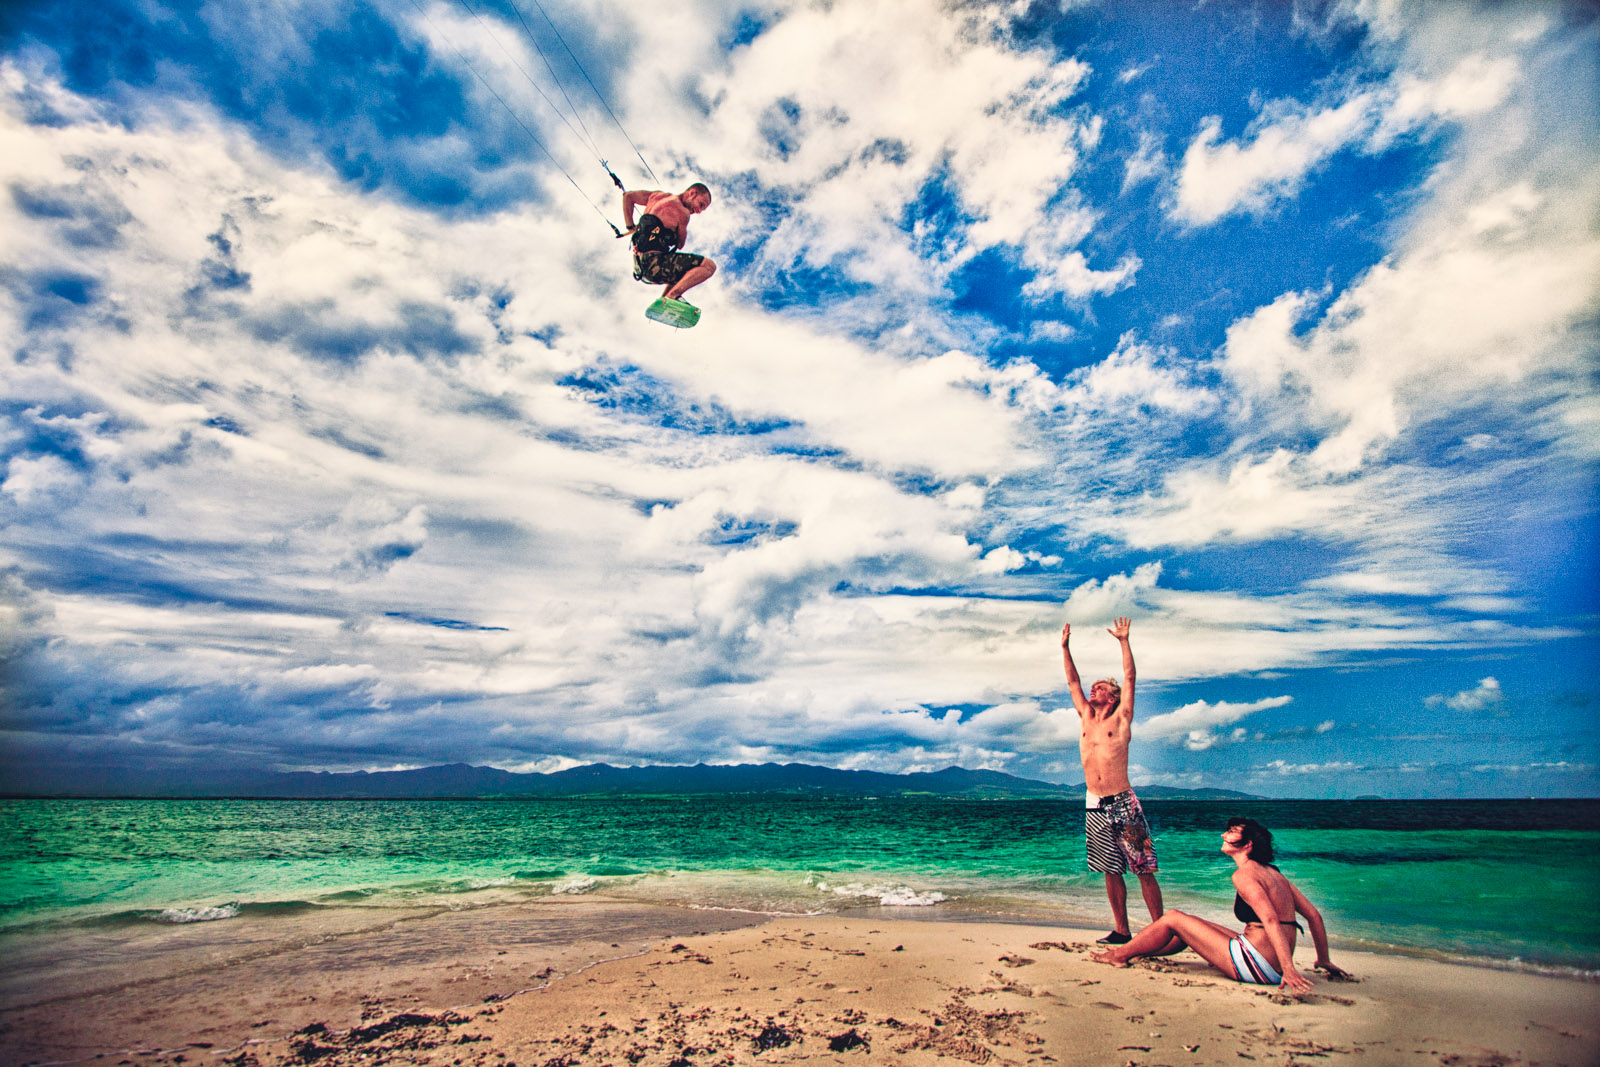 kite, kitesurf, surf, travel, destination, paradise, adventure, travelphotographer, destinationphotographer, photographer, kitephotographer, surfphotographer, adventurephotographer, isleblance, island, guadeloupe, langley, caribbean, highfive, fail, anhede